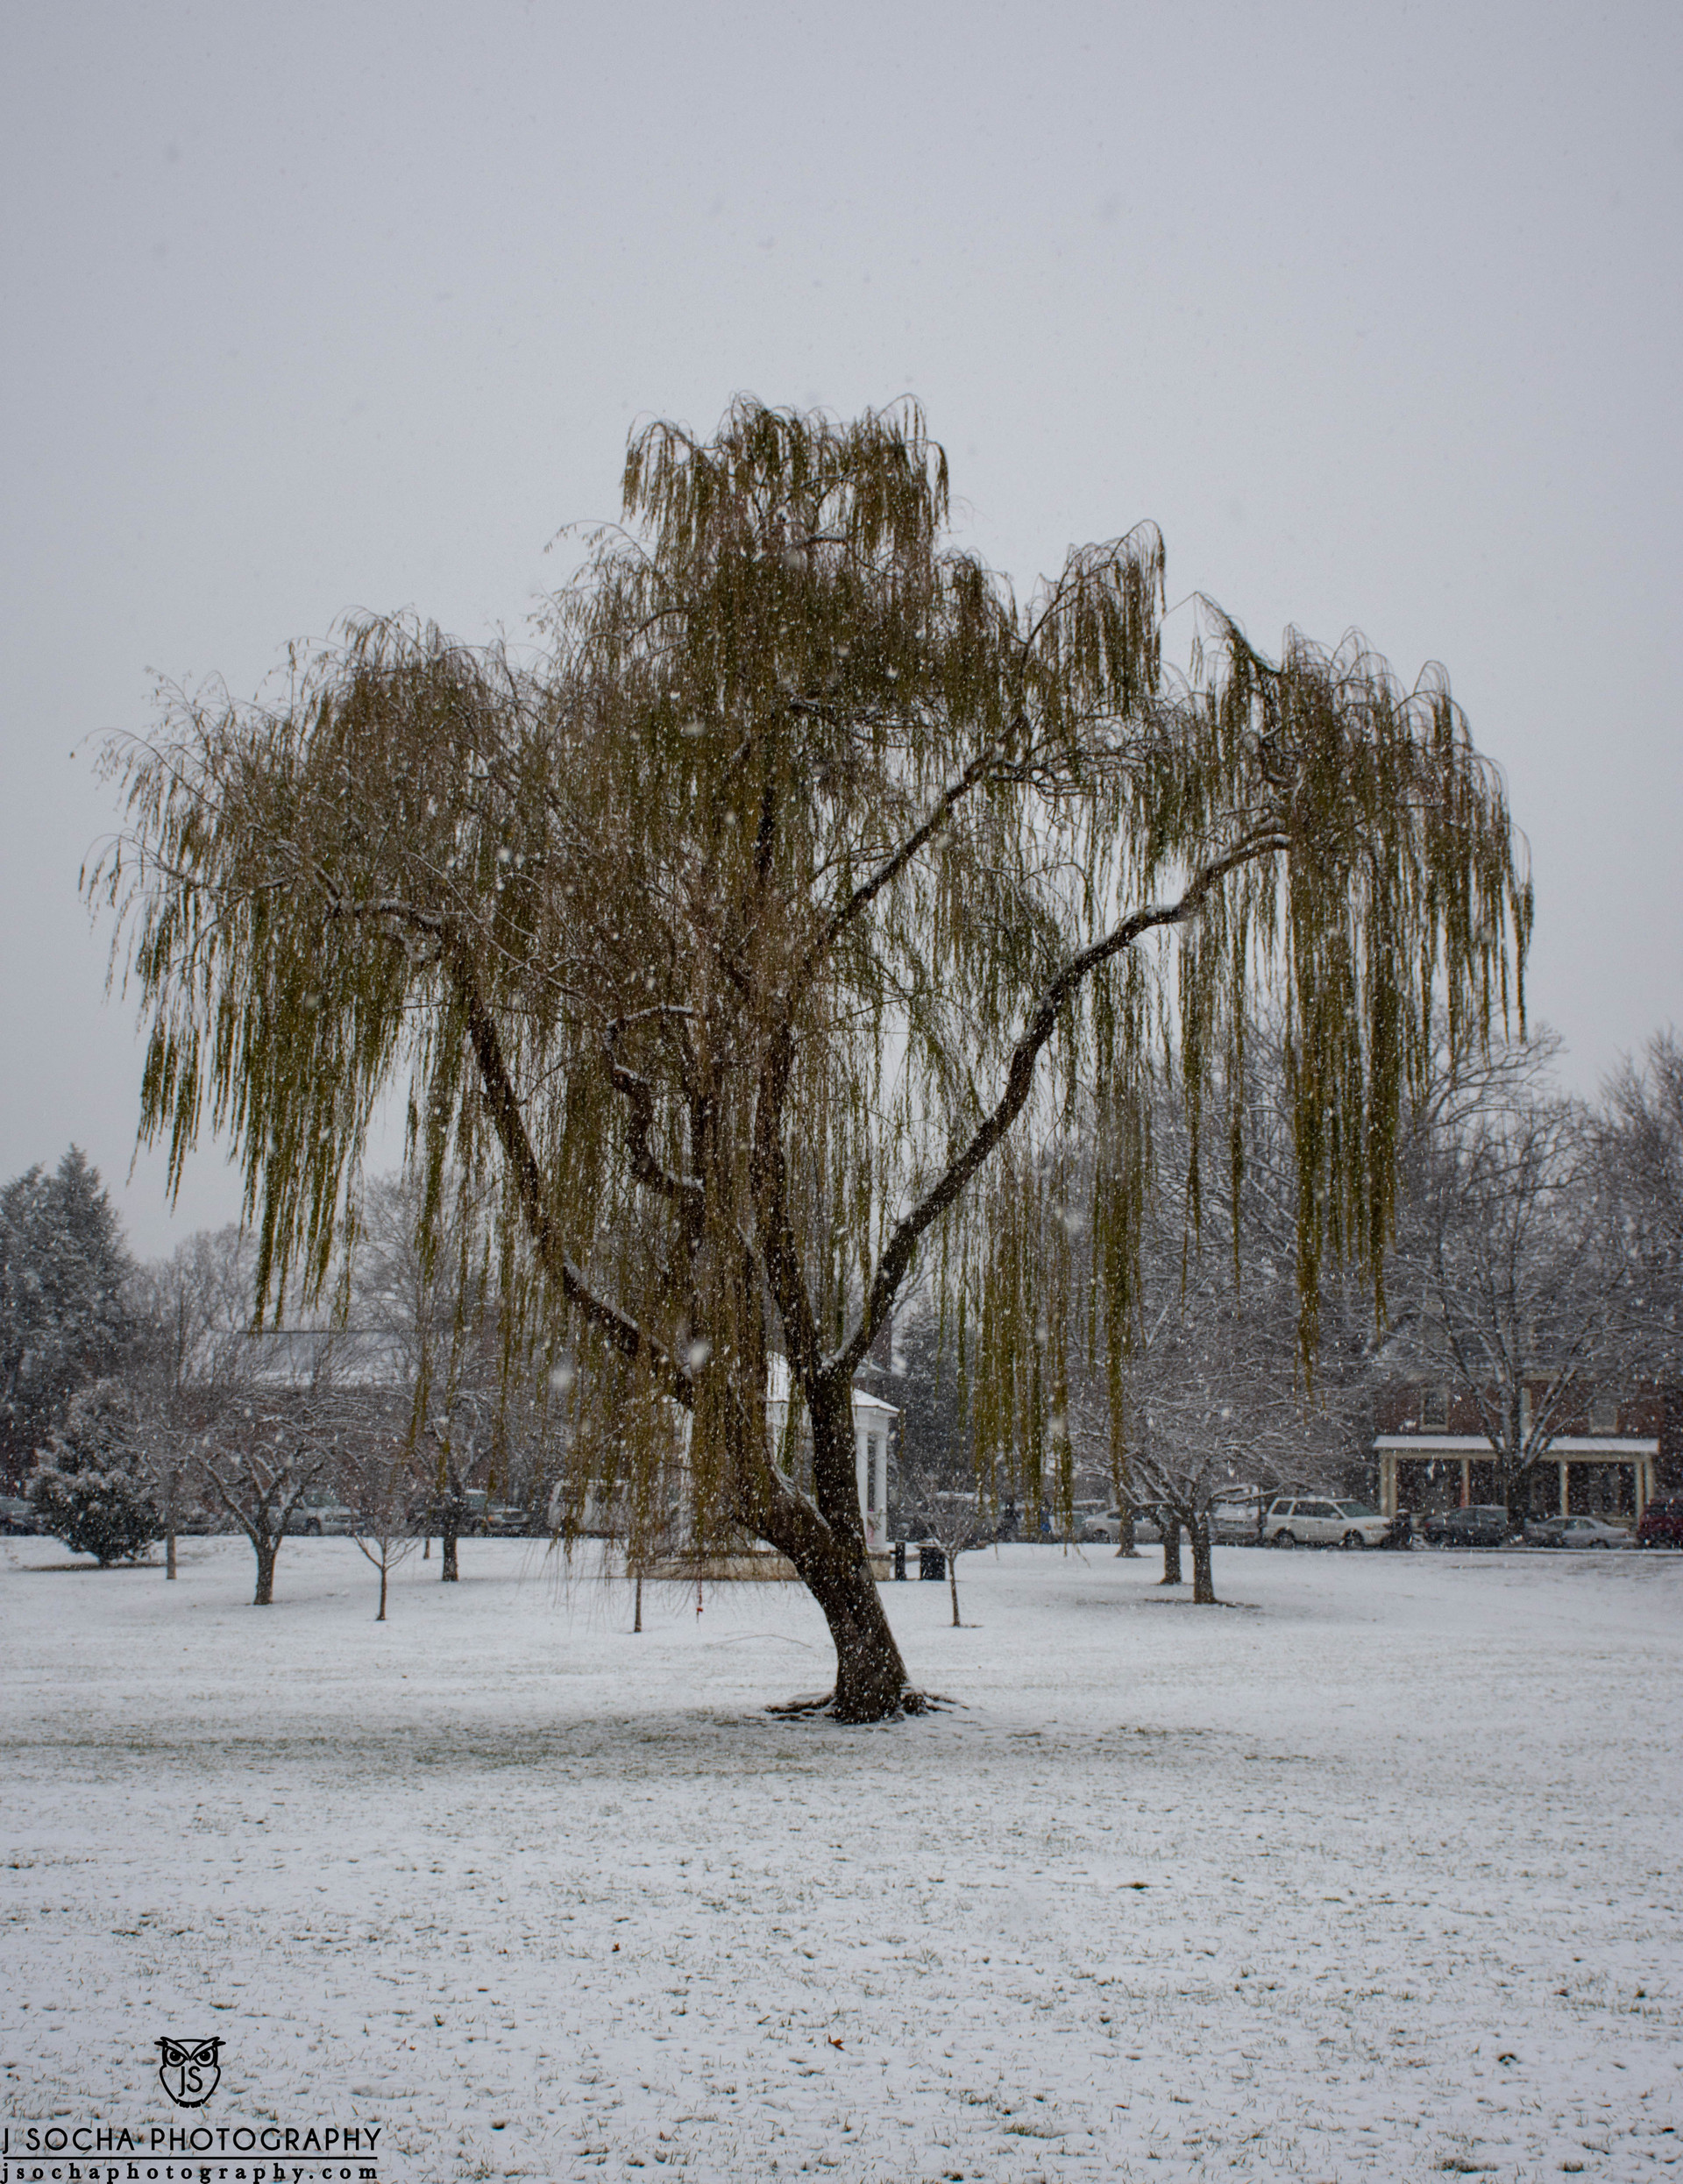 Frederick's Beloved Weeping Willow